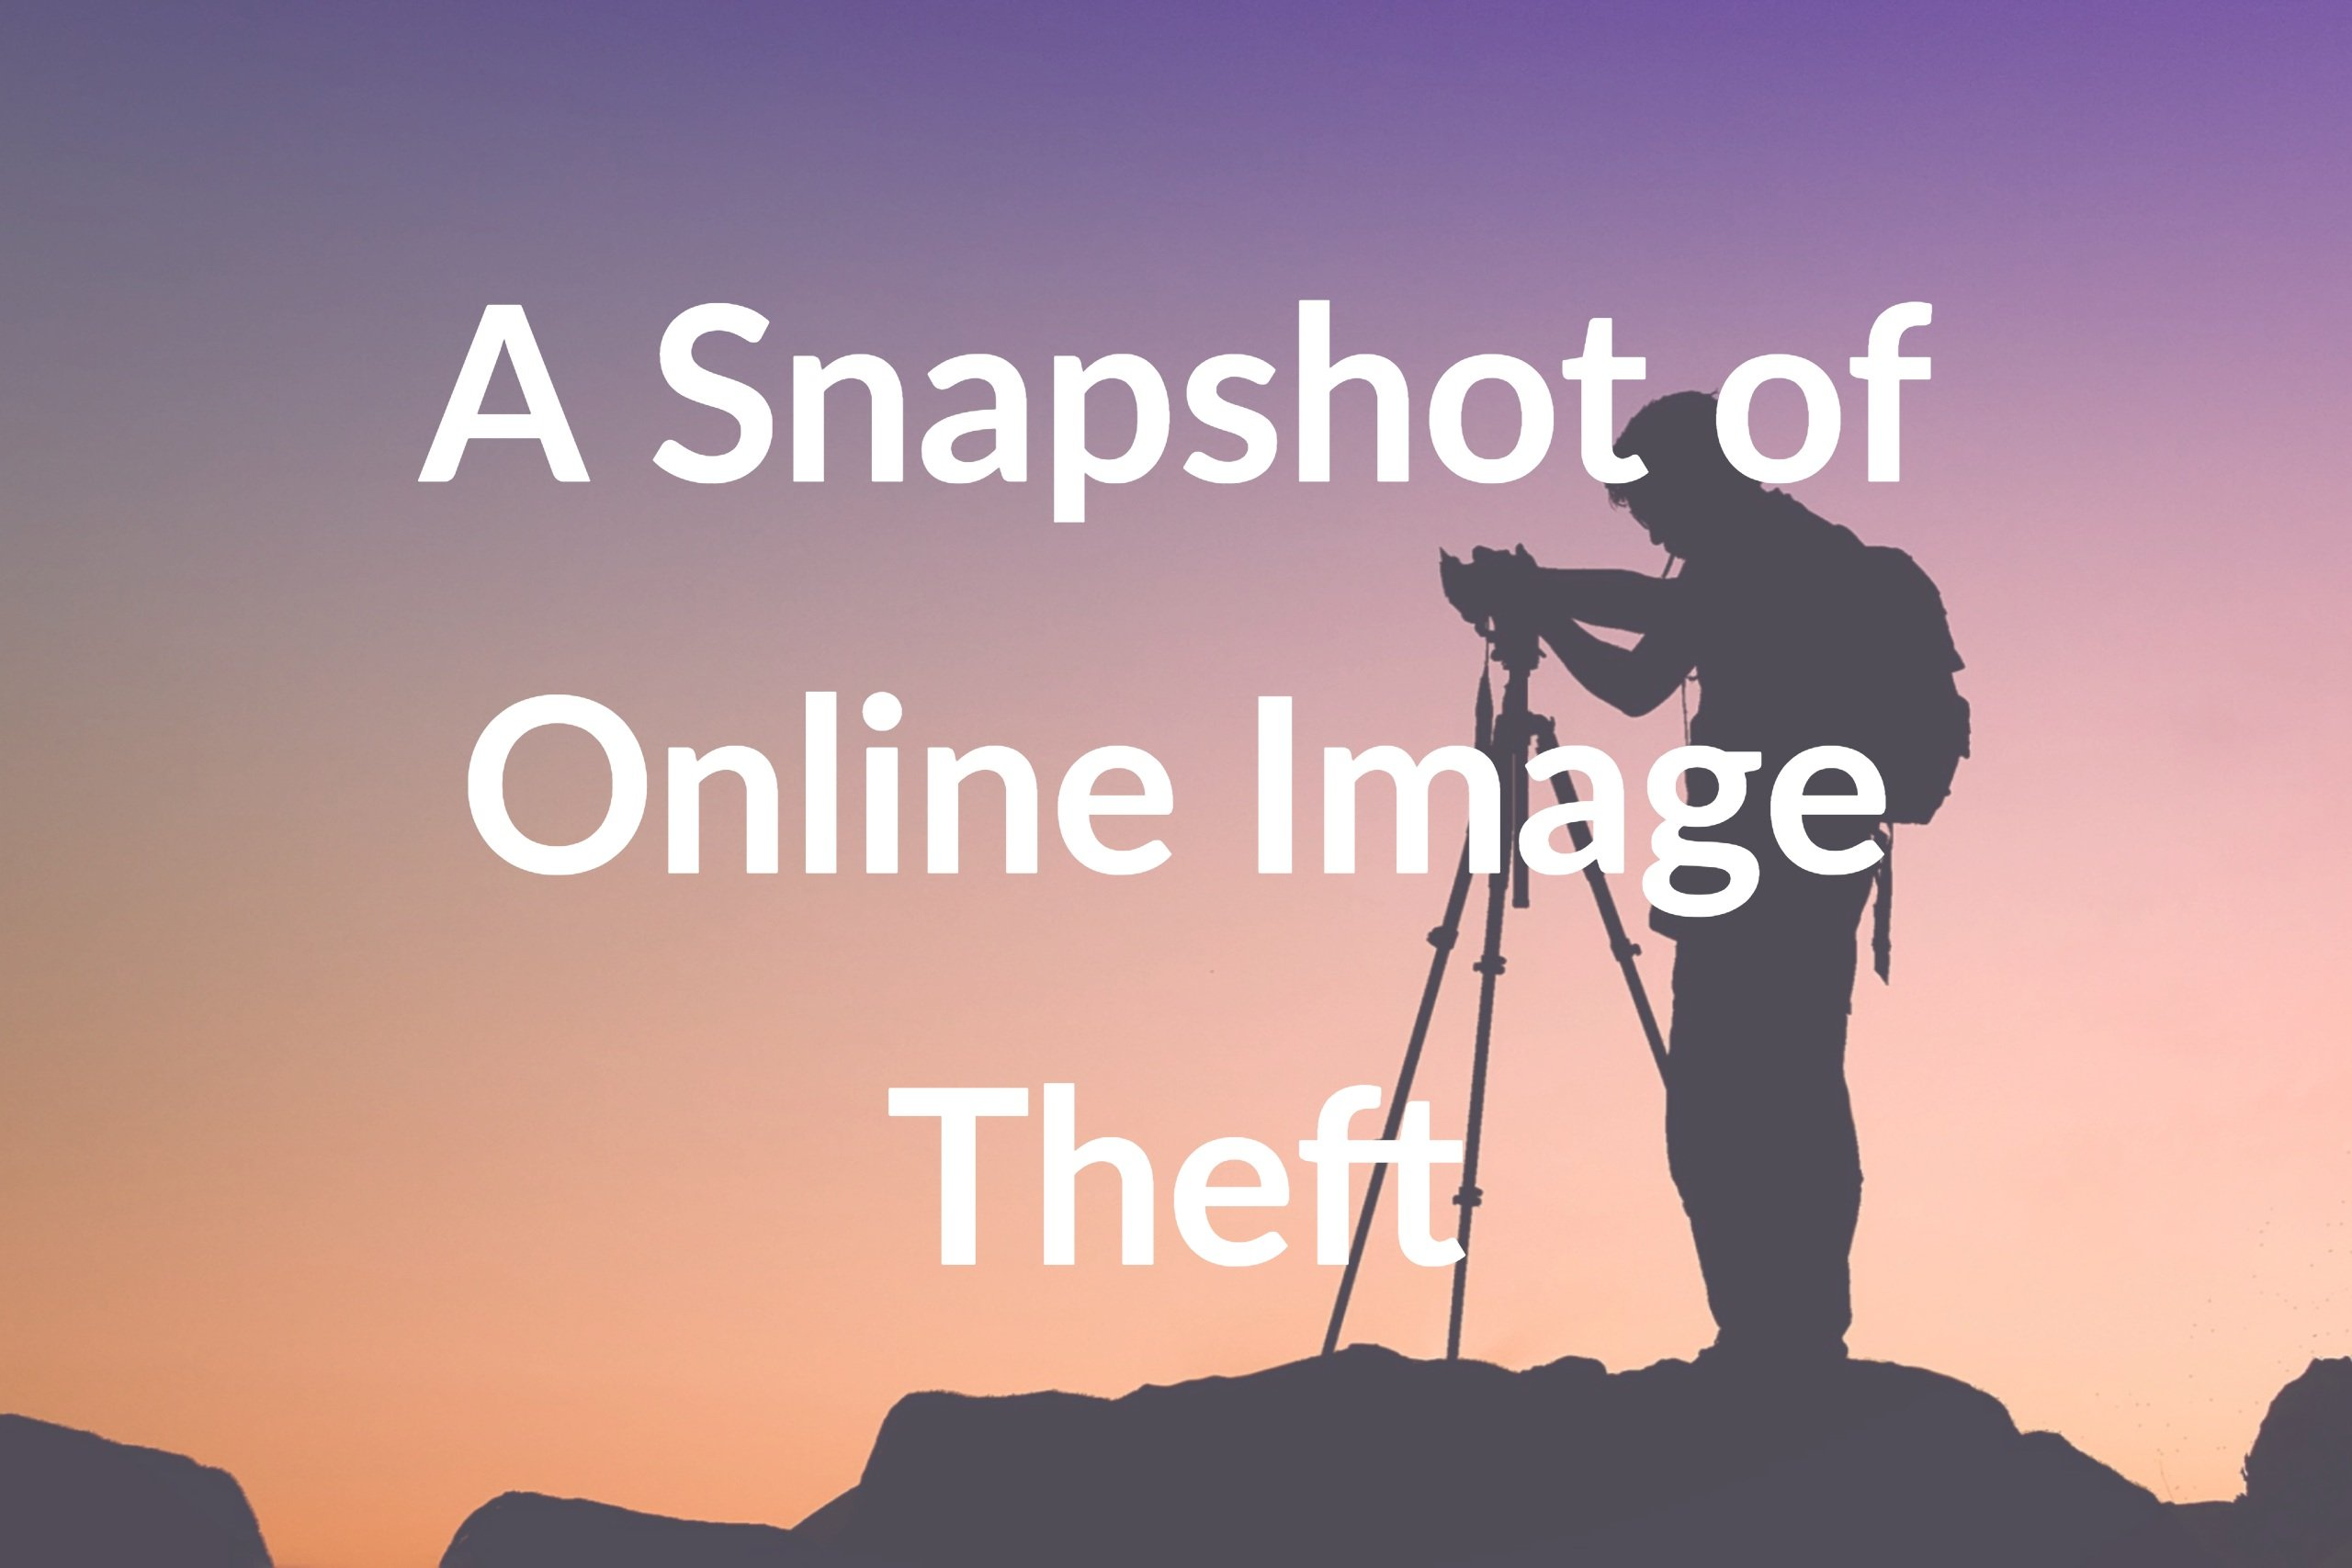 [Infographic] A Snapshot of Online Image Theft